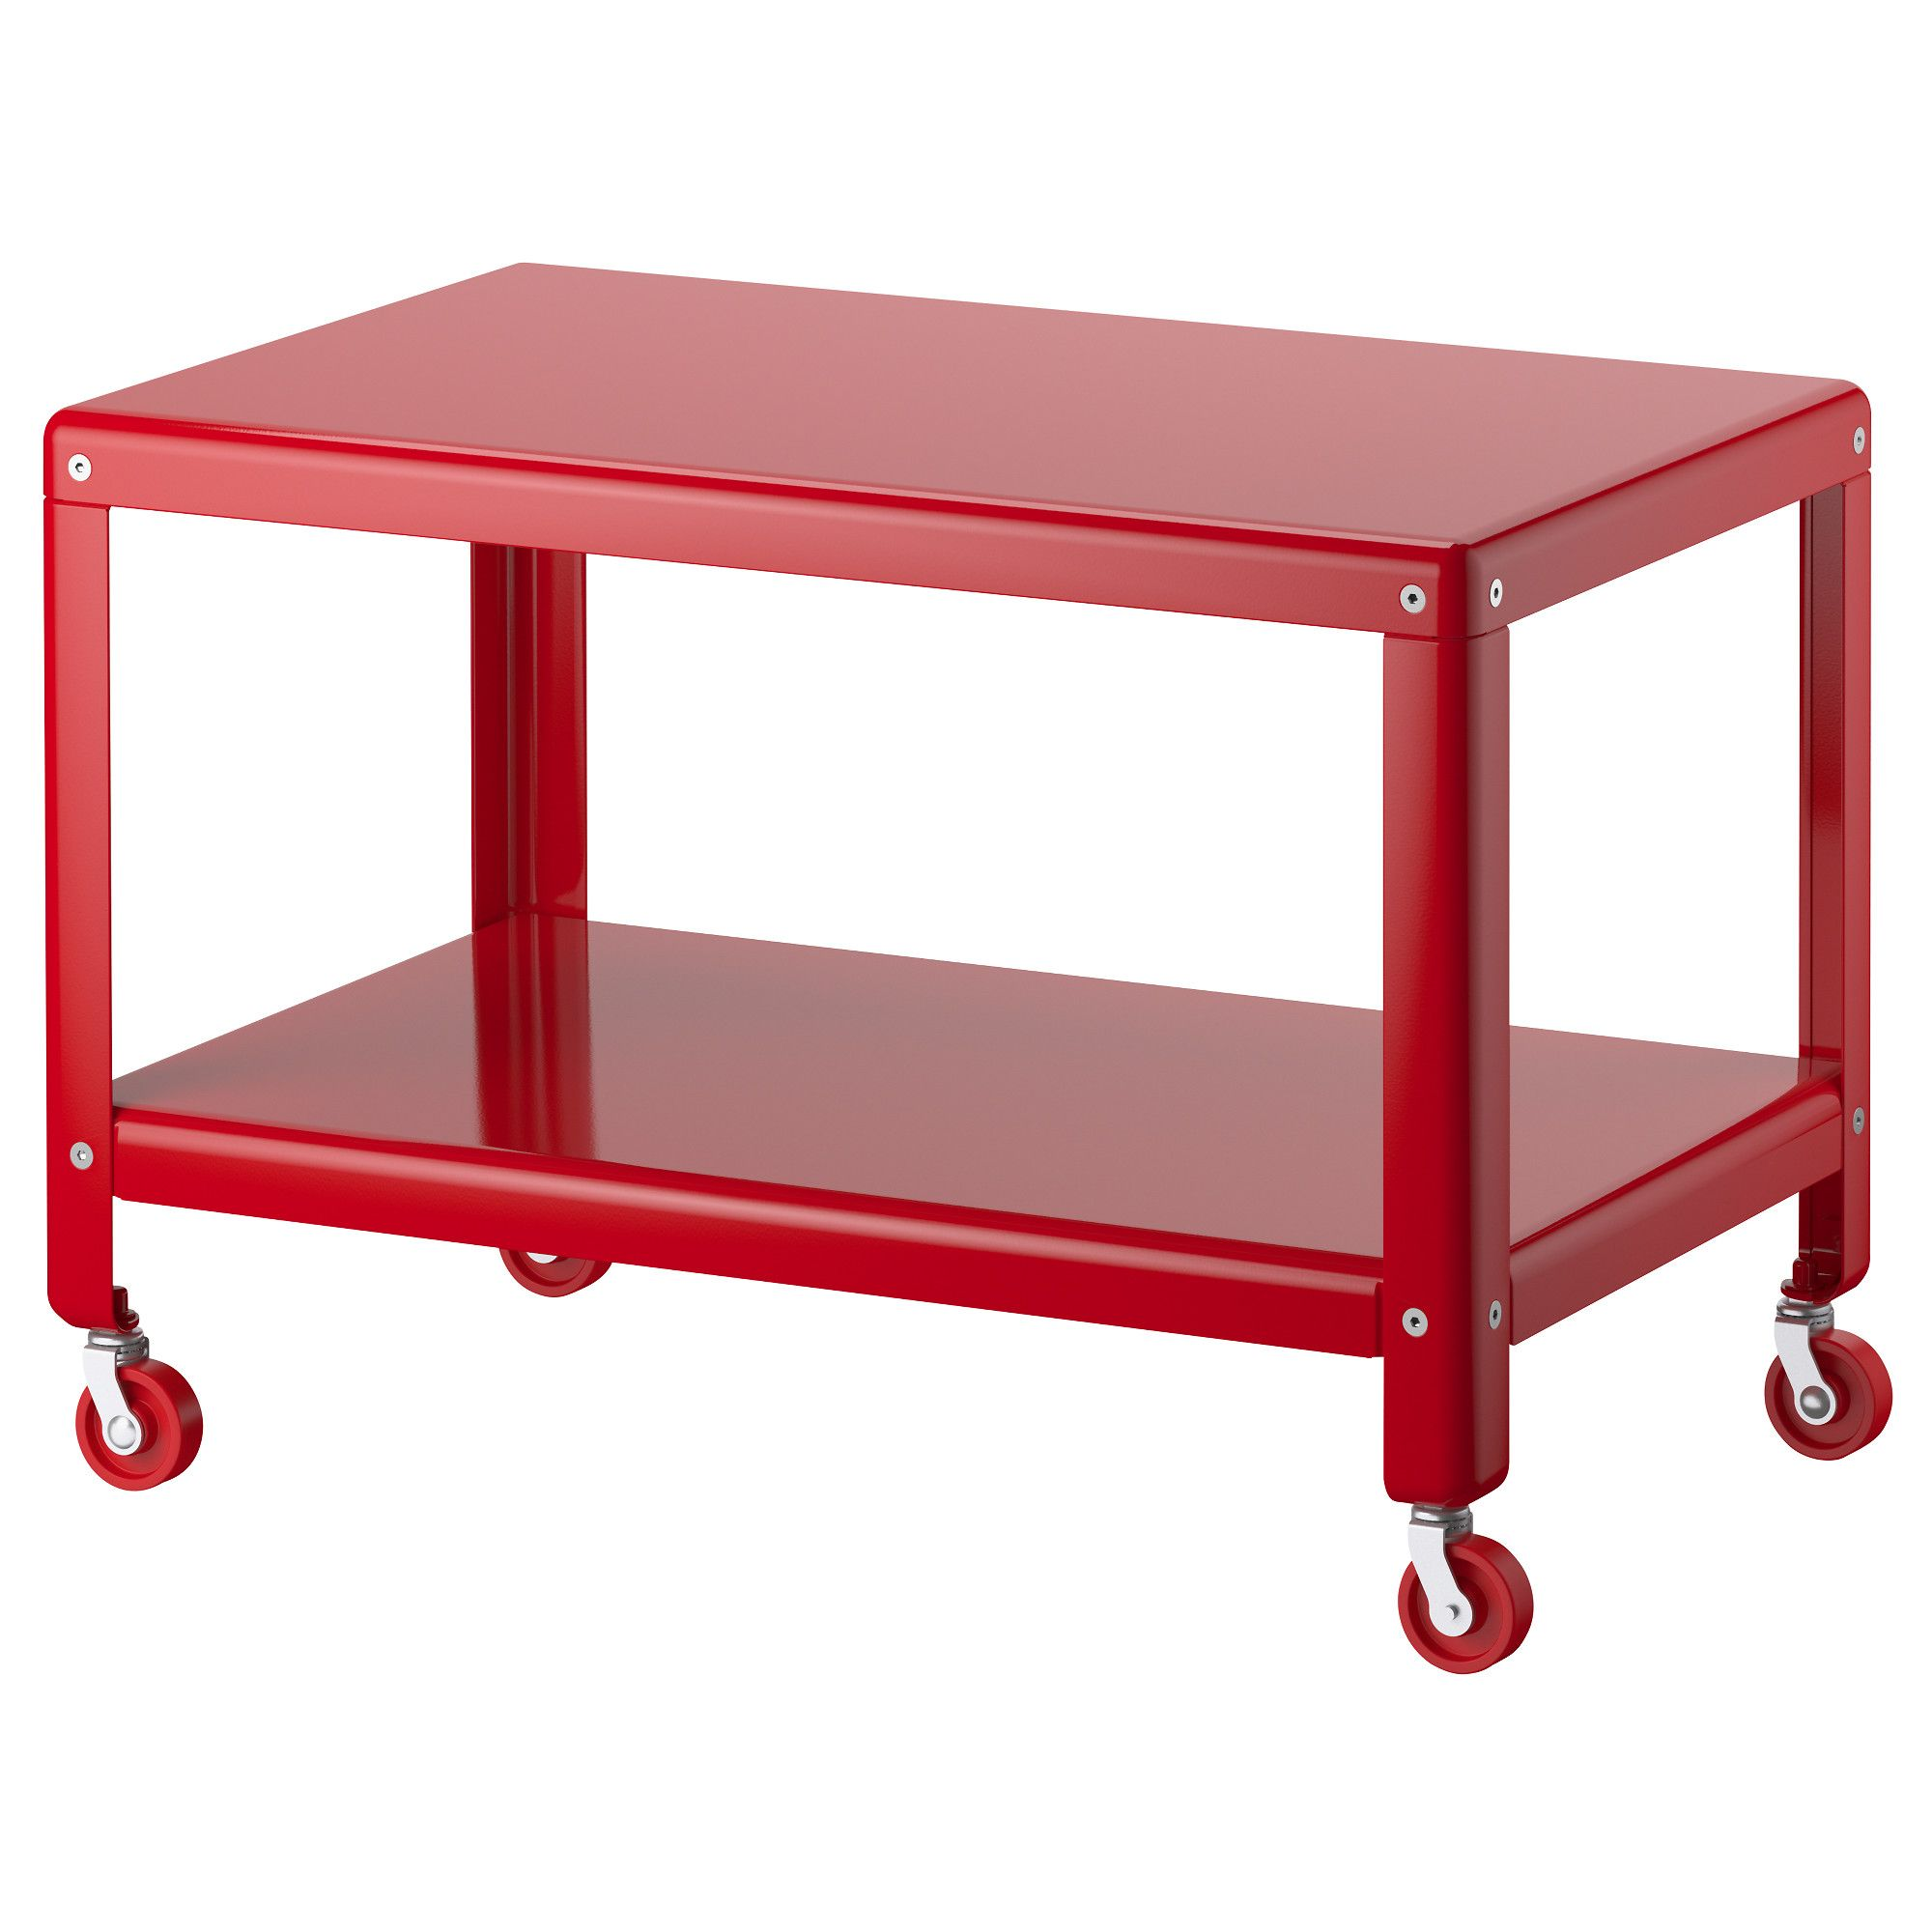 Ikea ikea ps 2012 coffee table red the casters make - Easy to move couch ...